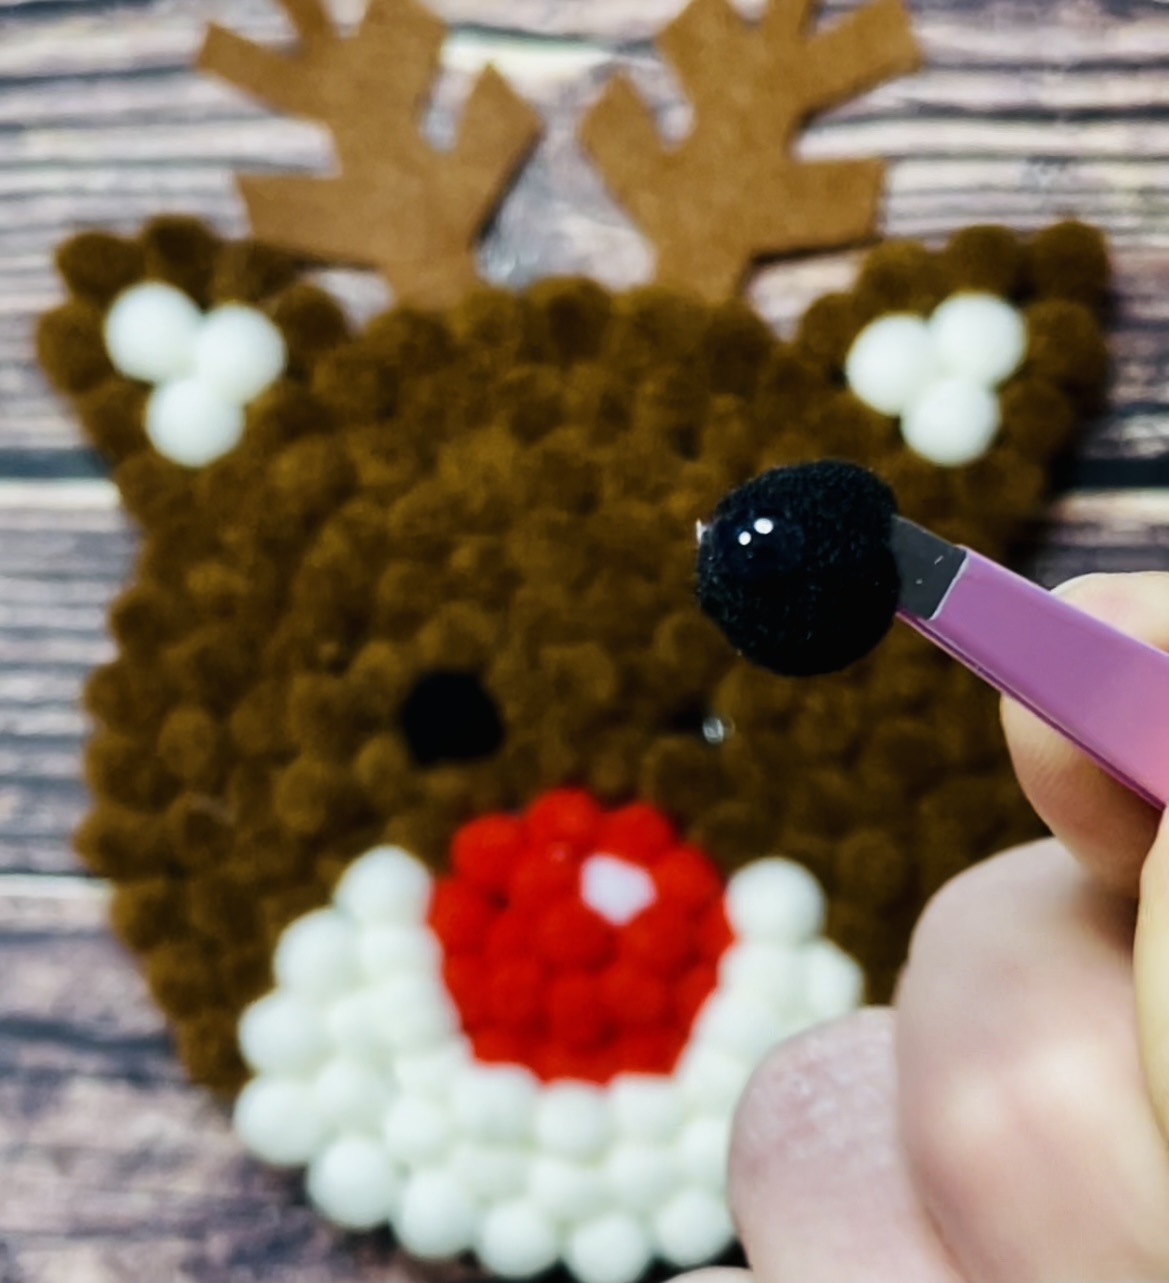 Secure the eyes by adding a drop of hot glue onto each of the black pom-poms and securing them individually... be sure to use tweezers to protect your fingers!